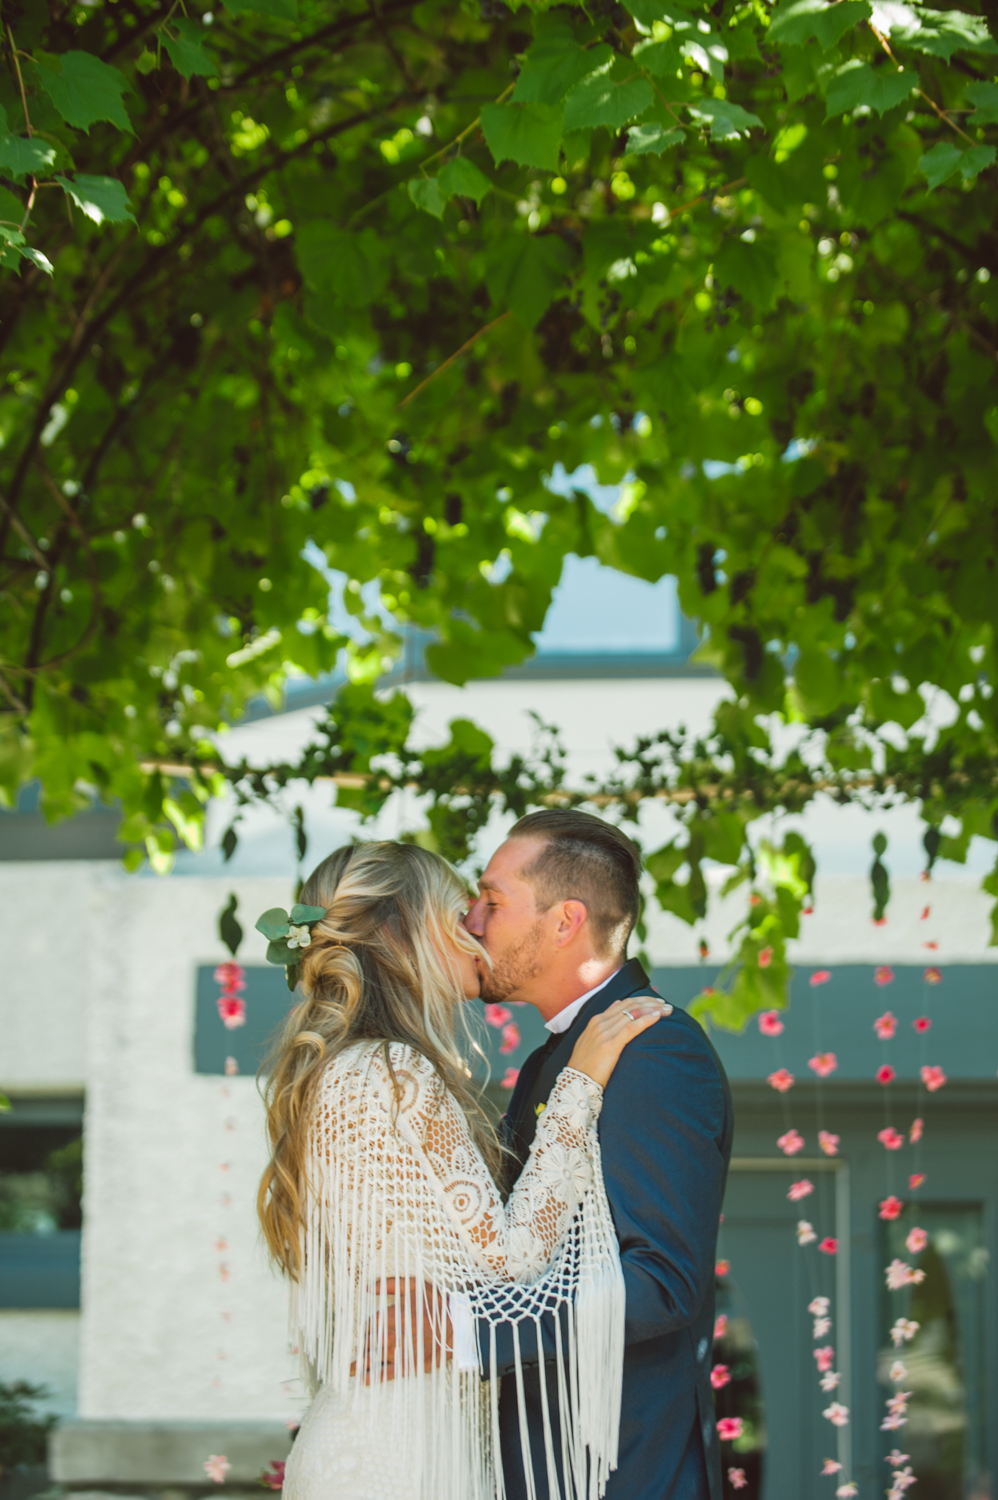 Kelowna Summer modern boho wedding-jessika hunter photo-12.JPG